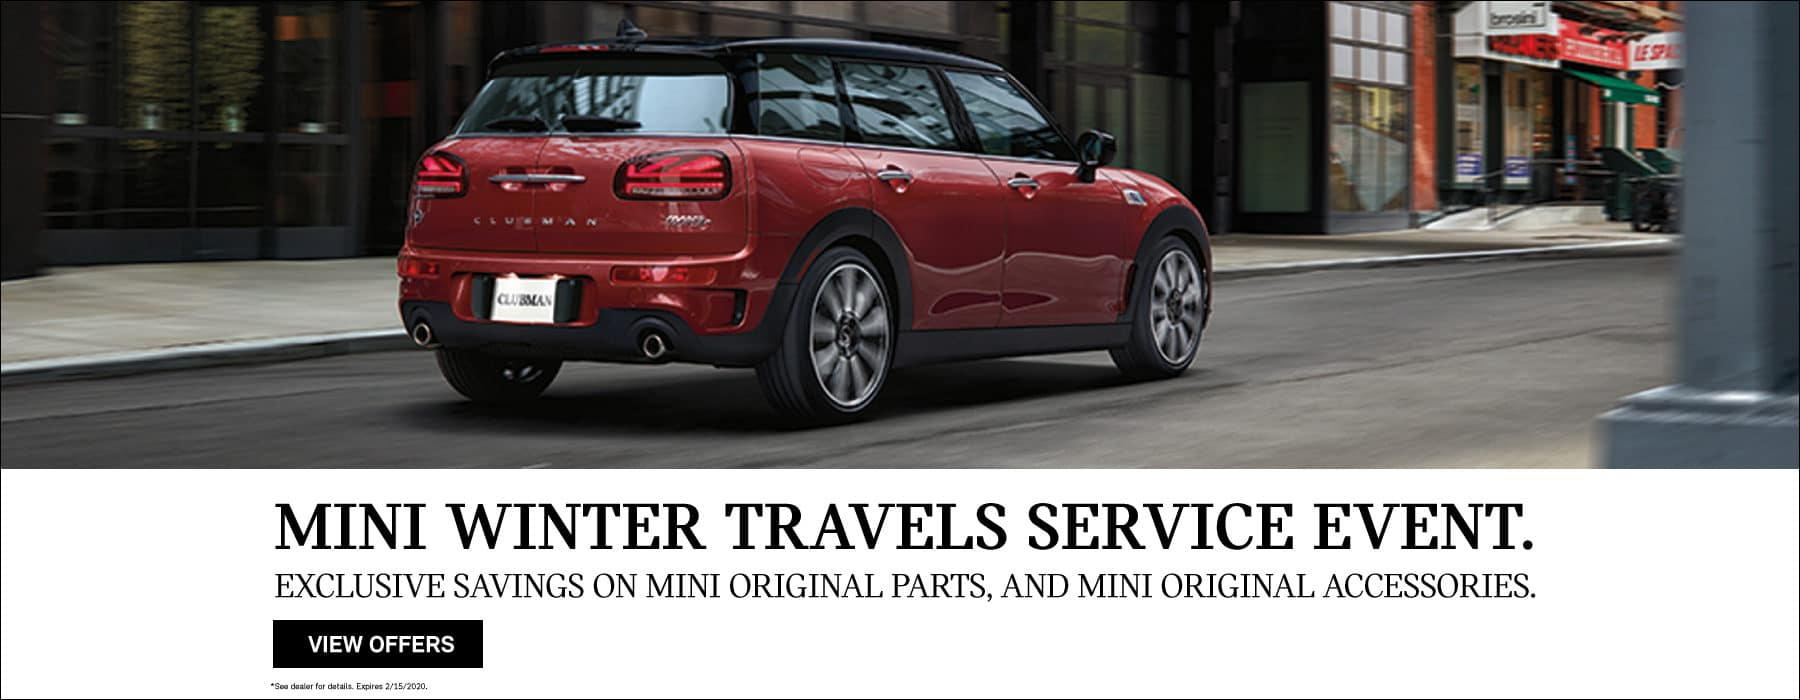 THE MINI WINTER TRAVELS SERVICE EVENT.   EXCLUSIVE SAVINGS: DECEMBER 1 – FEBRUARY 15, 2020. Red Clubman driving on road.